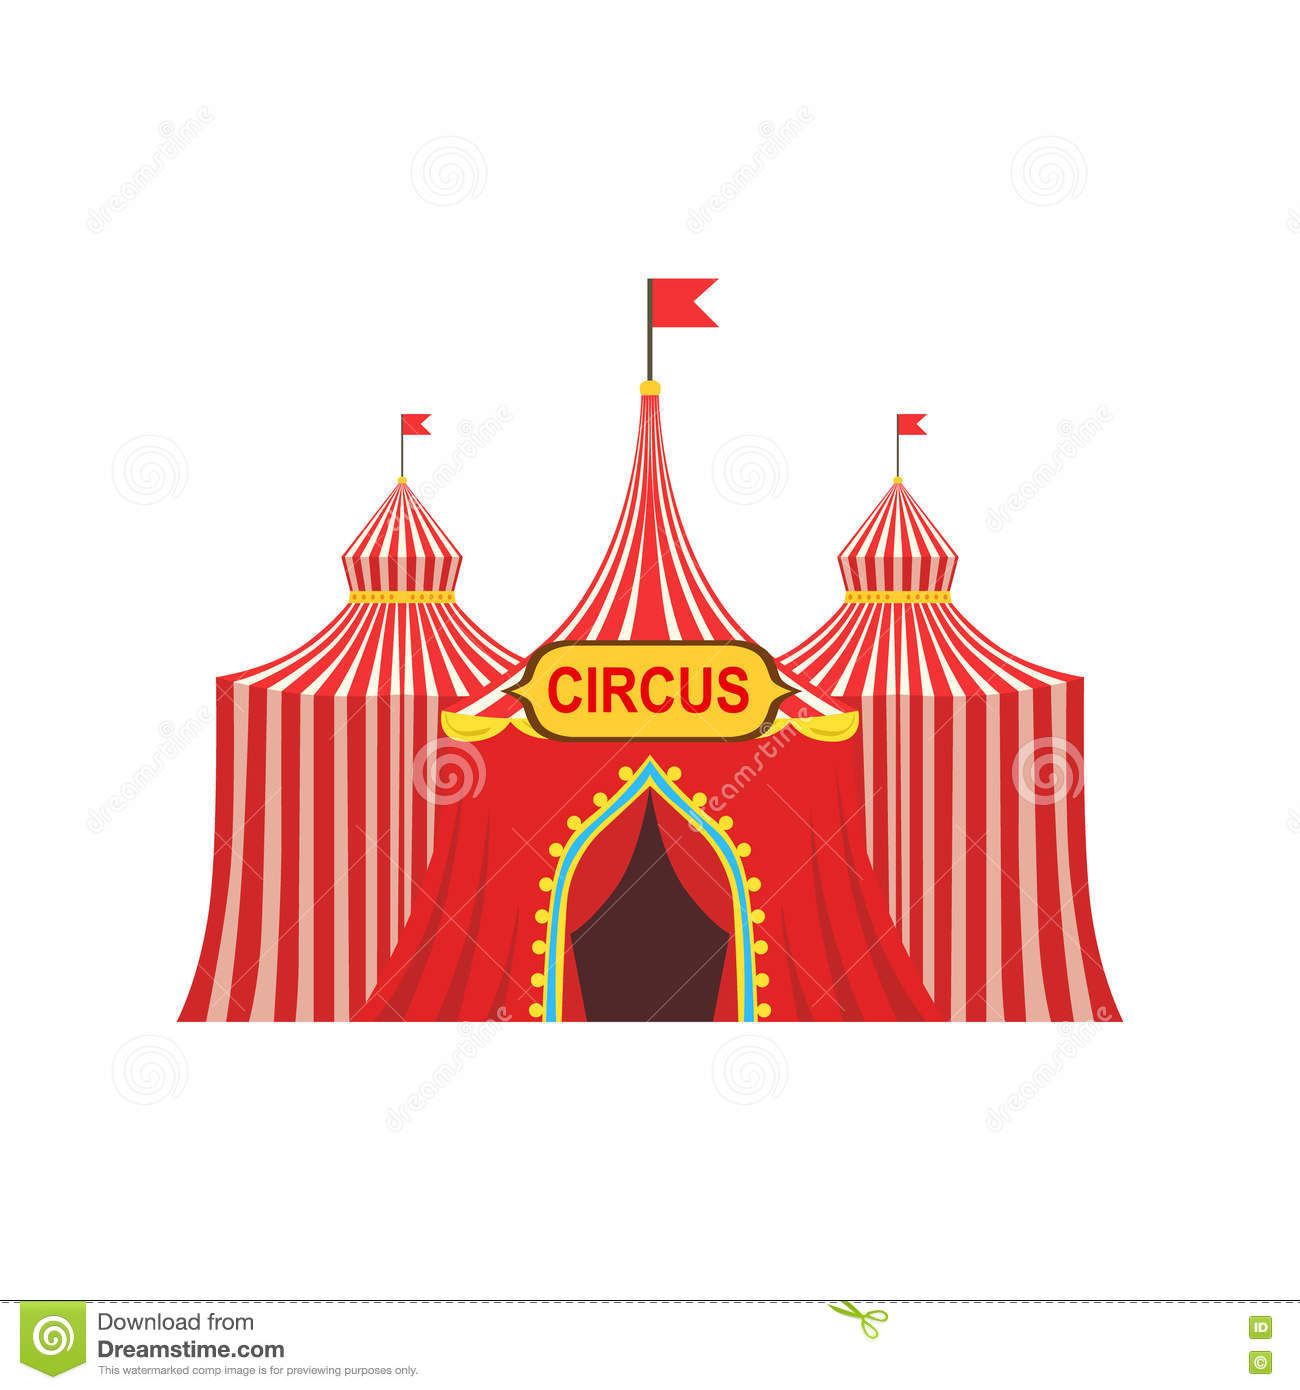 Circus Temporary Tent In Stripy Red Cloth With Flags And Entrance Sign